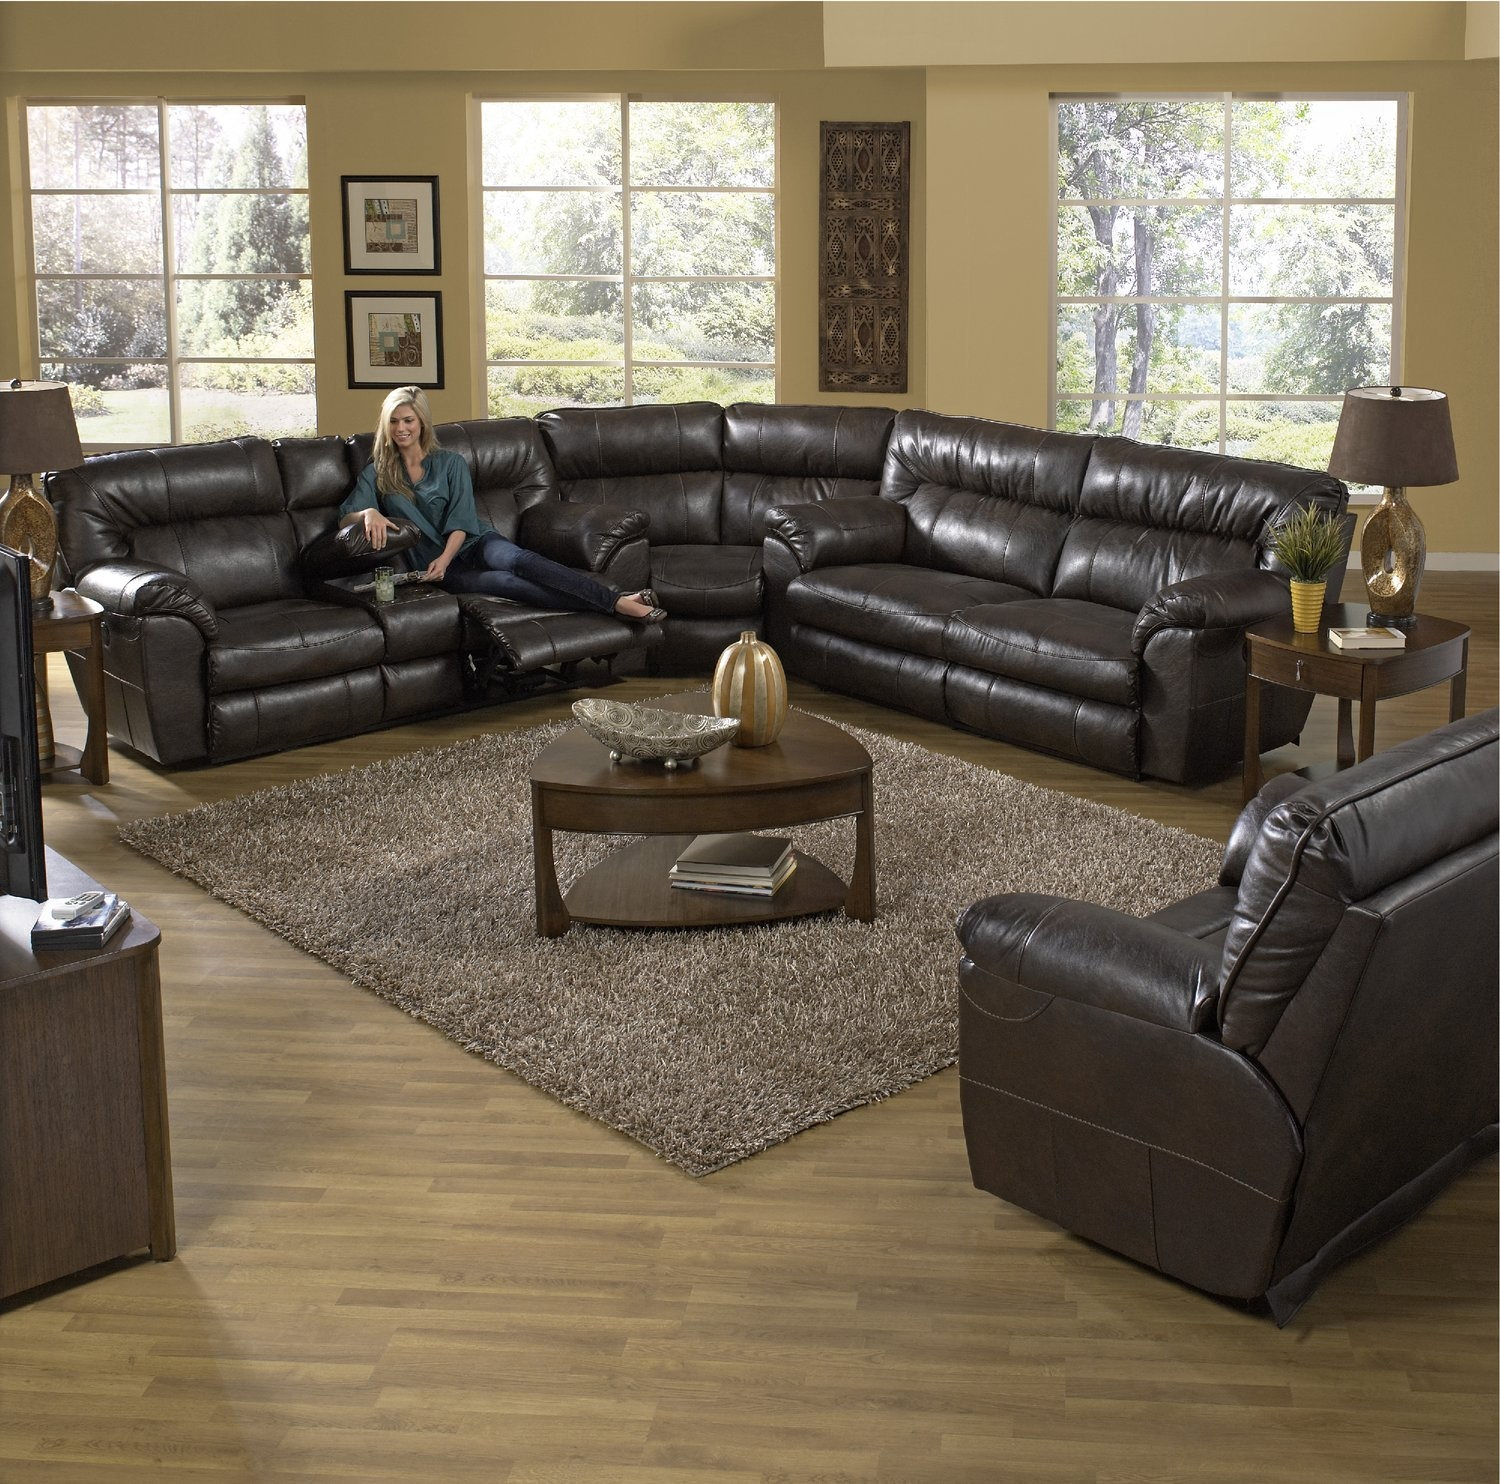 Ryan 3 Piece Reclining Sectional | Hom Furniture For Duluth Mn Sectional Sofas (Image 5 of 10)